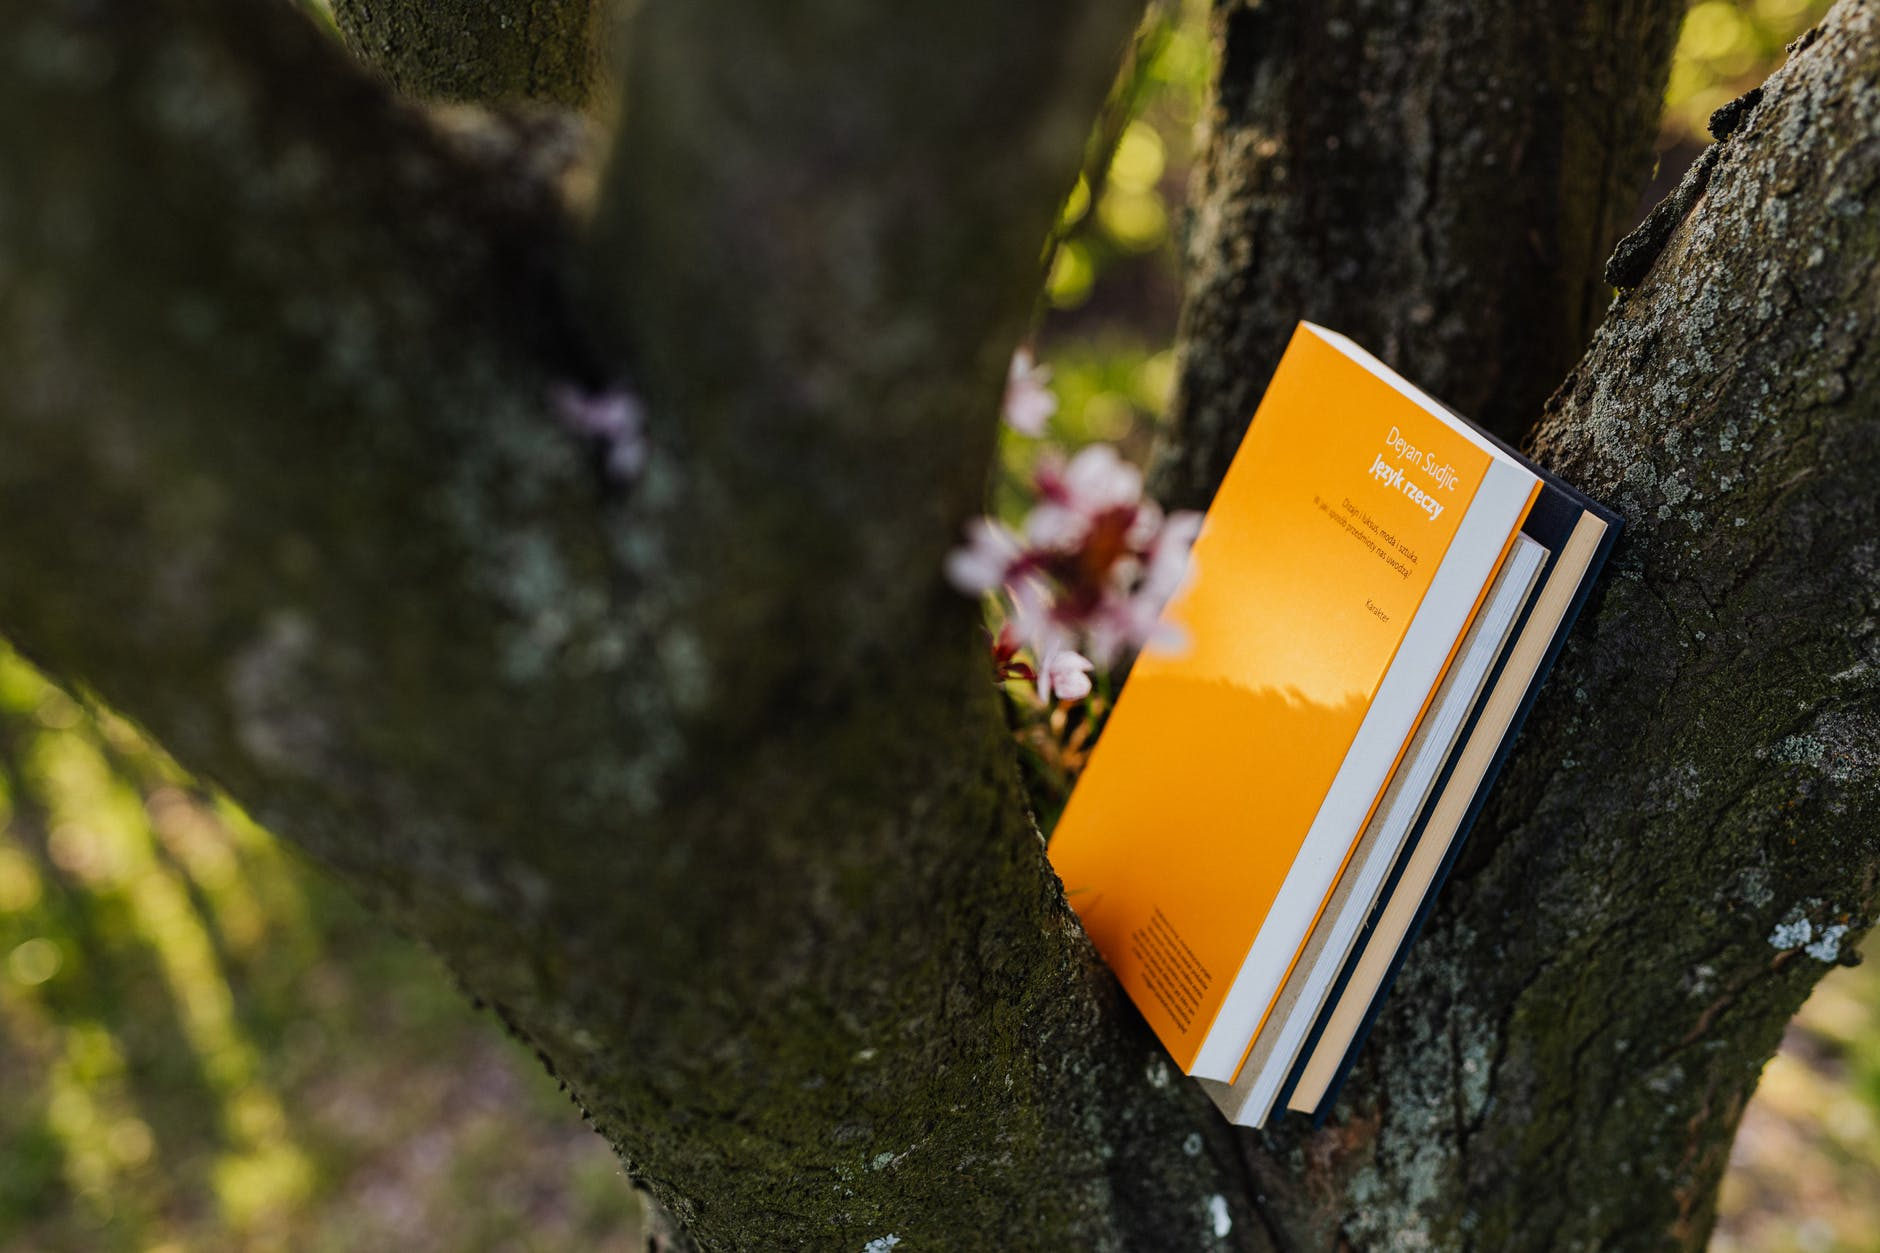 books in tree crotch on sunny spring day